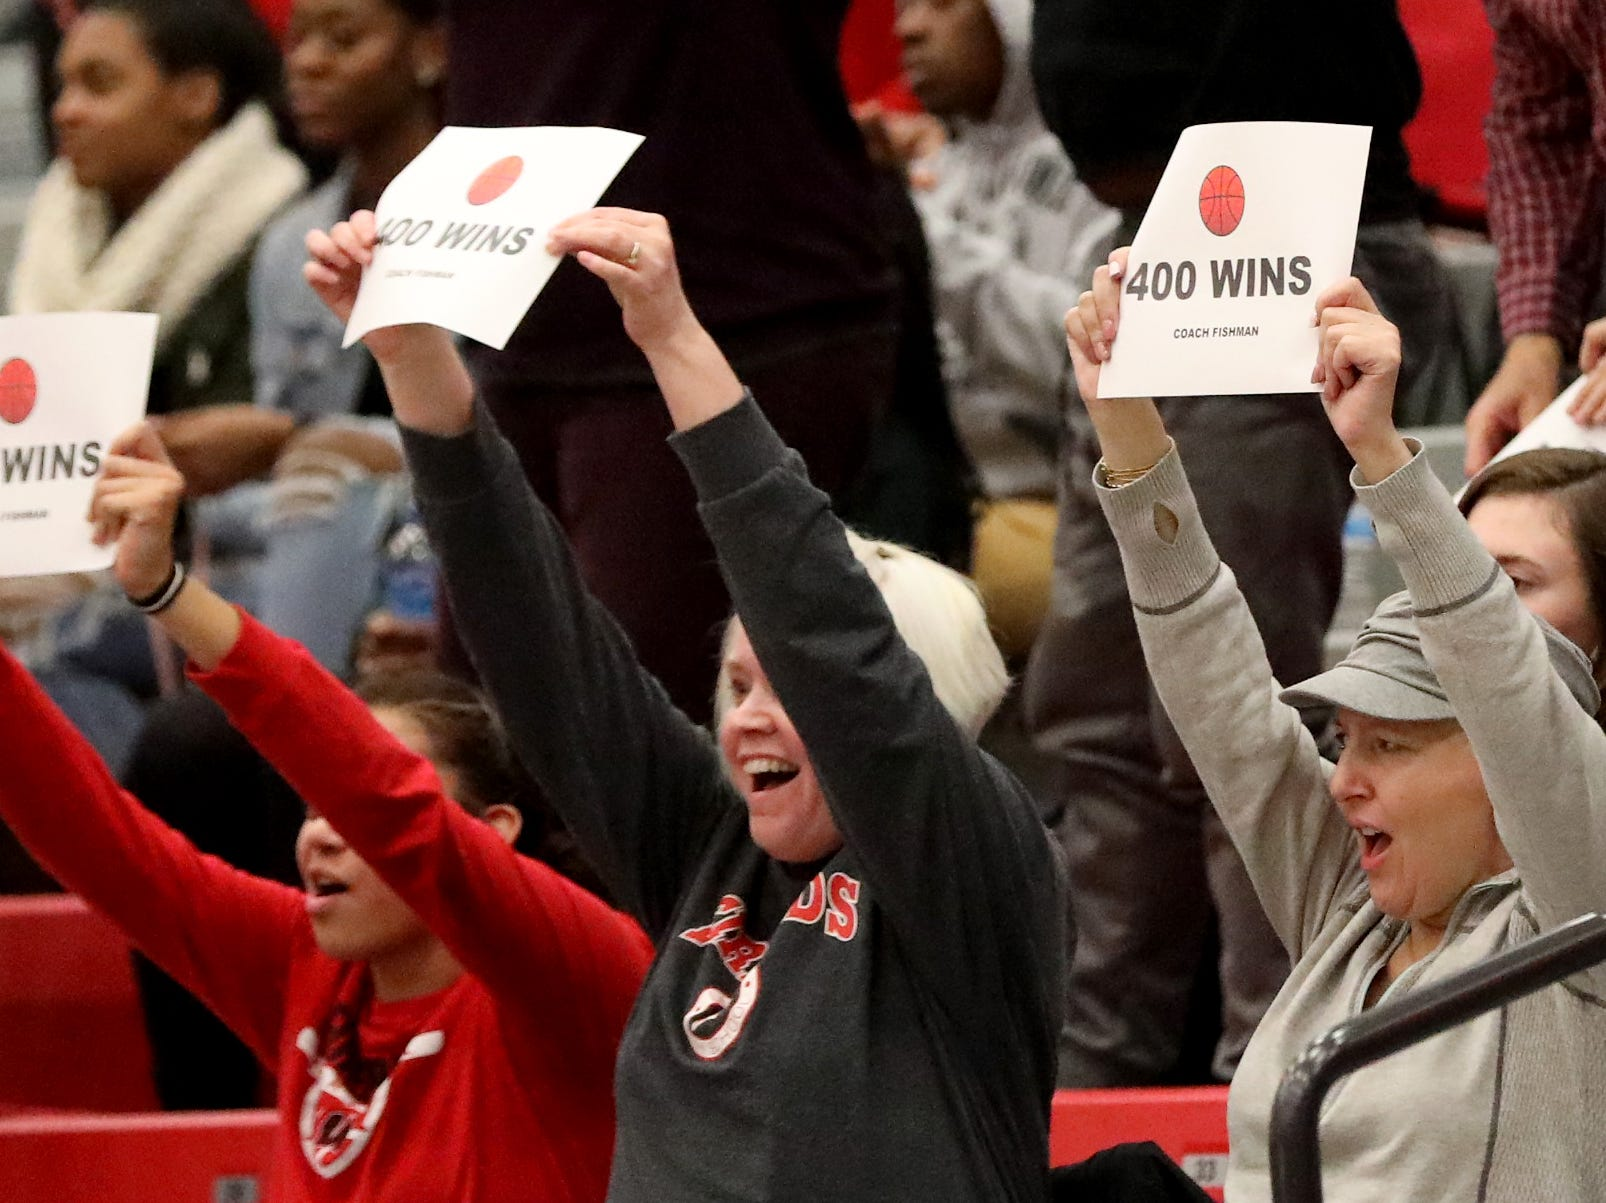 Lakota West fans celebrate head coach Andy Fishmans 400th win over Princeton, Wednesday, Jan.16,2019.